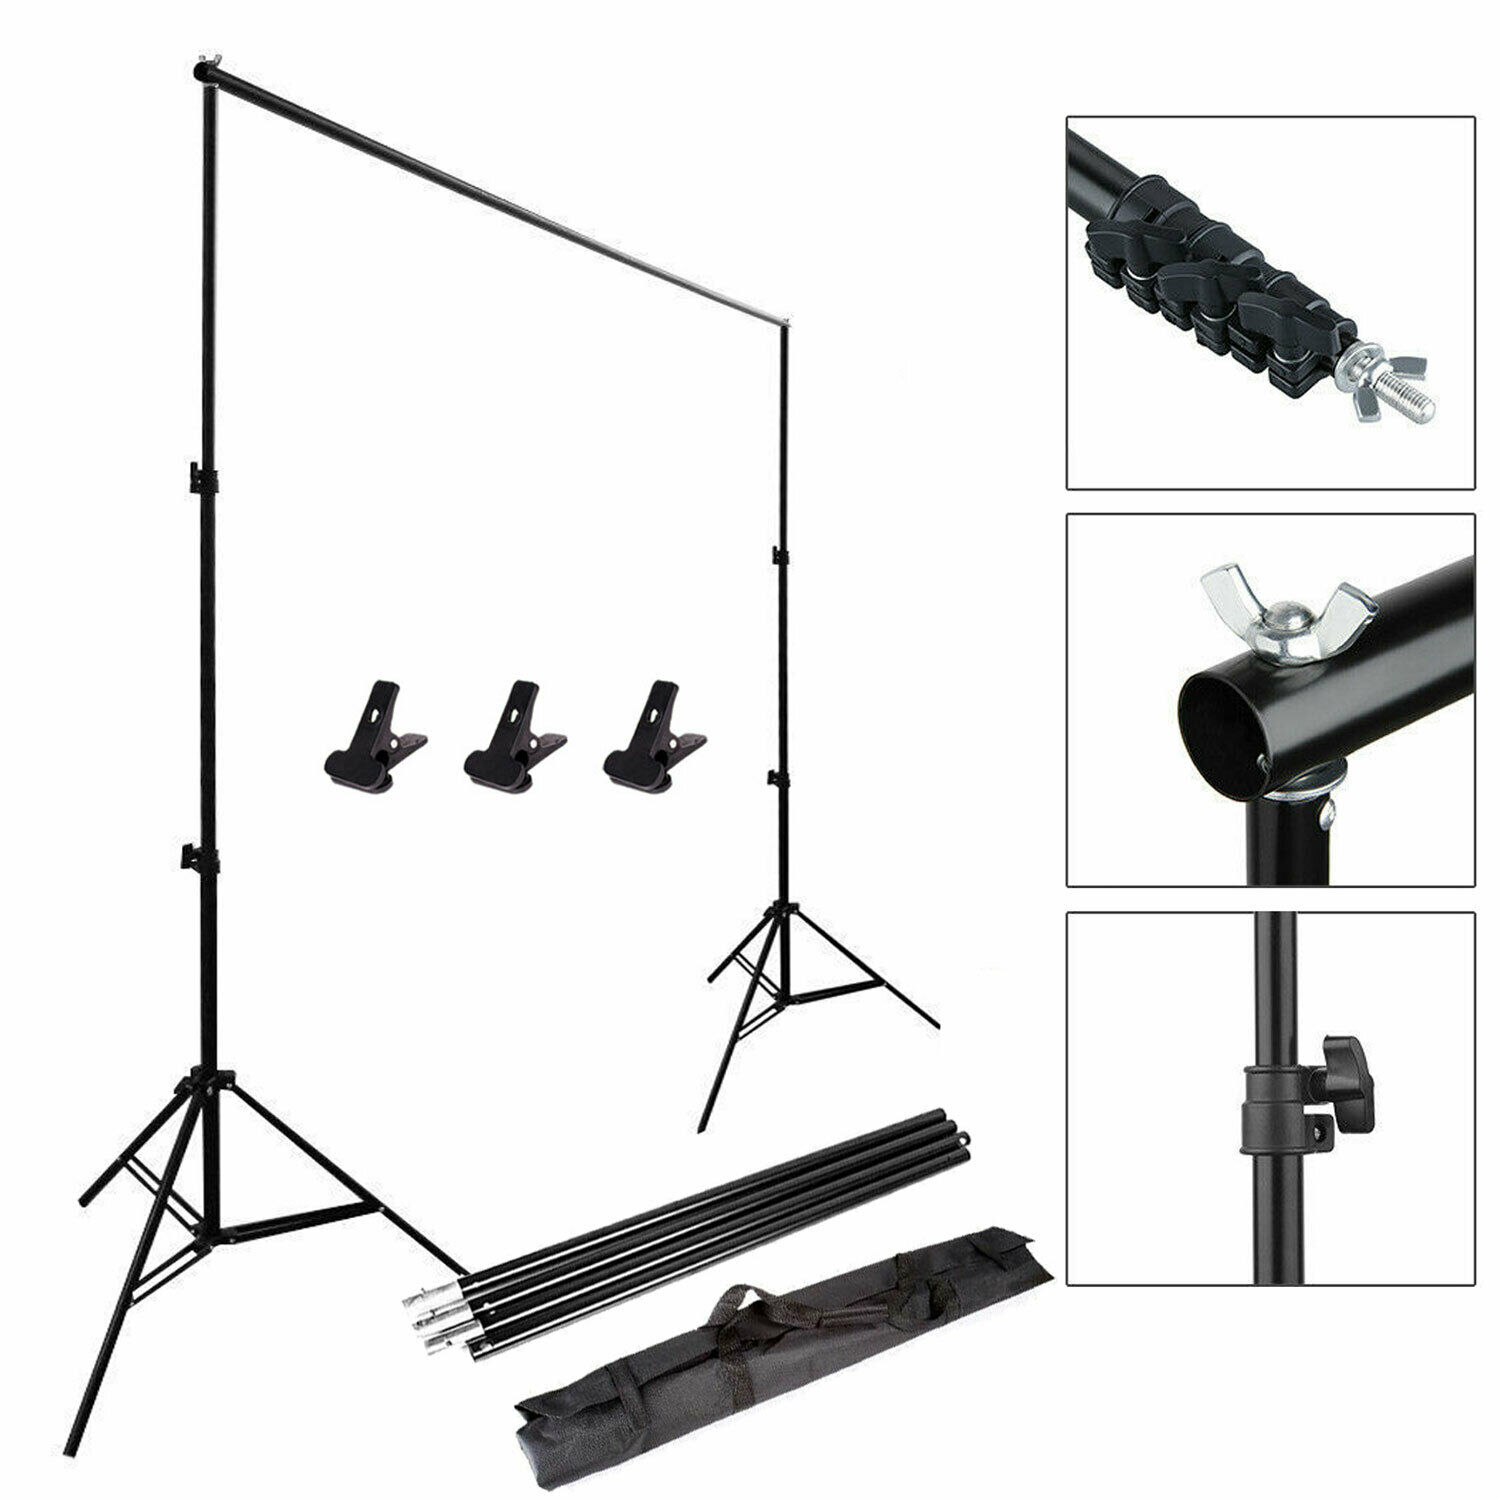 BESIUNI 2M*3M Photography Adjustable Background Support Stand Photo Crossbar Studio Kit